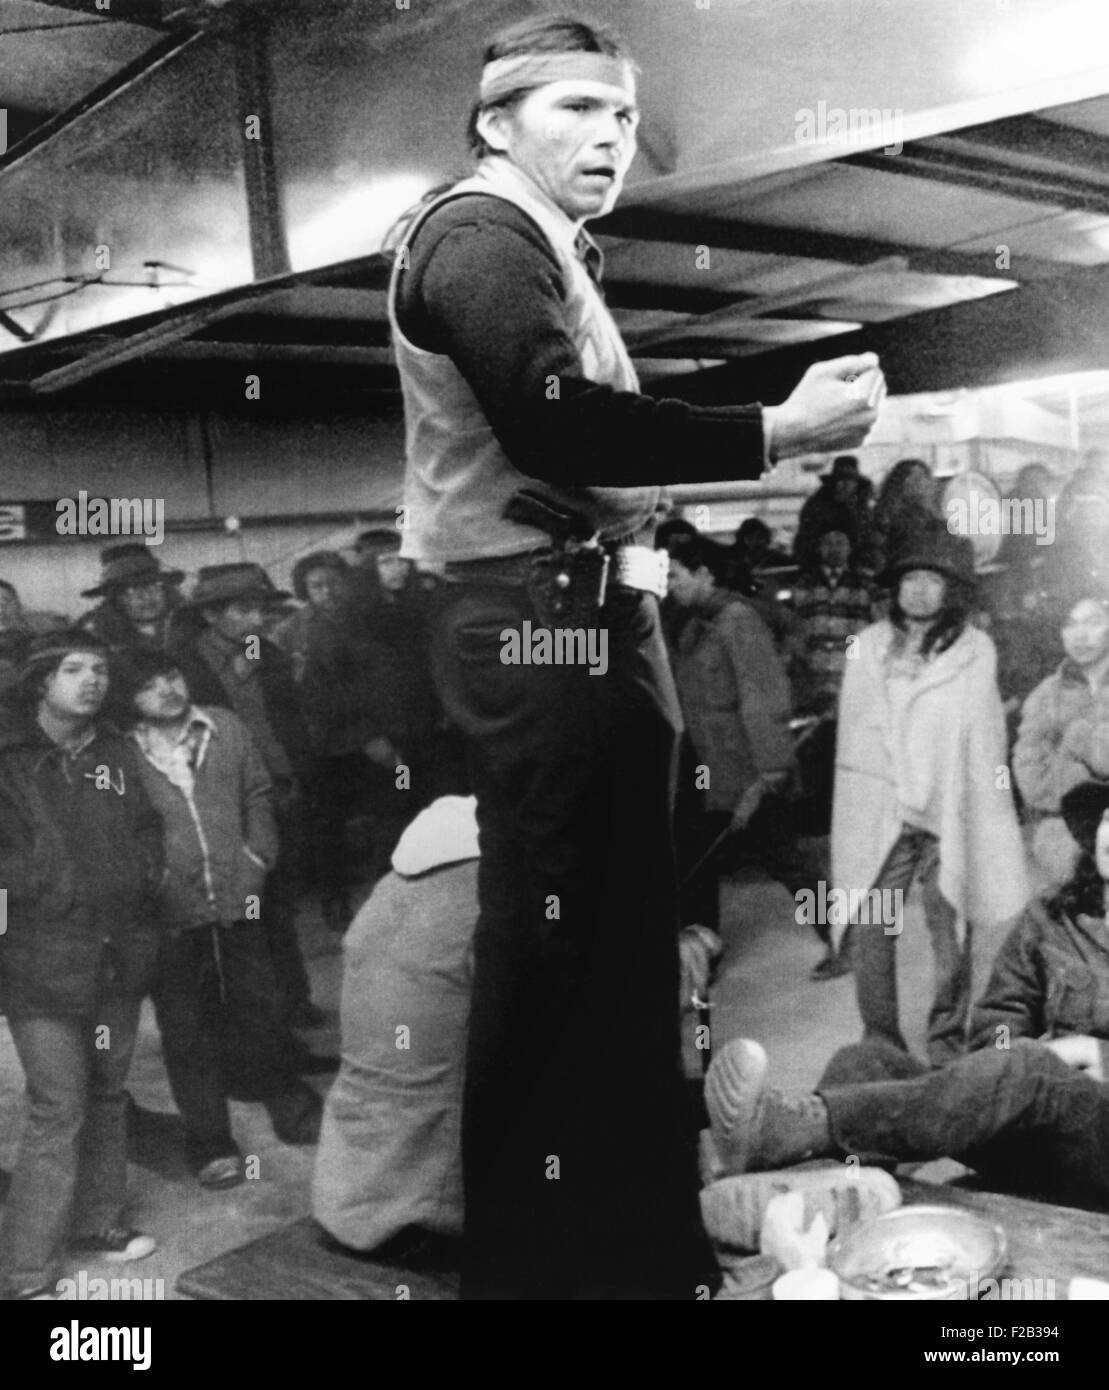 Dennis Banks, speaks to the Indians during the occupation Wounded Knee in 1973. About 200 Native Americans were - Stock Image